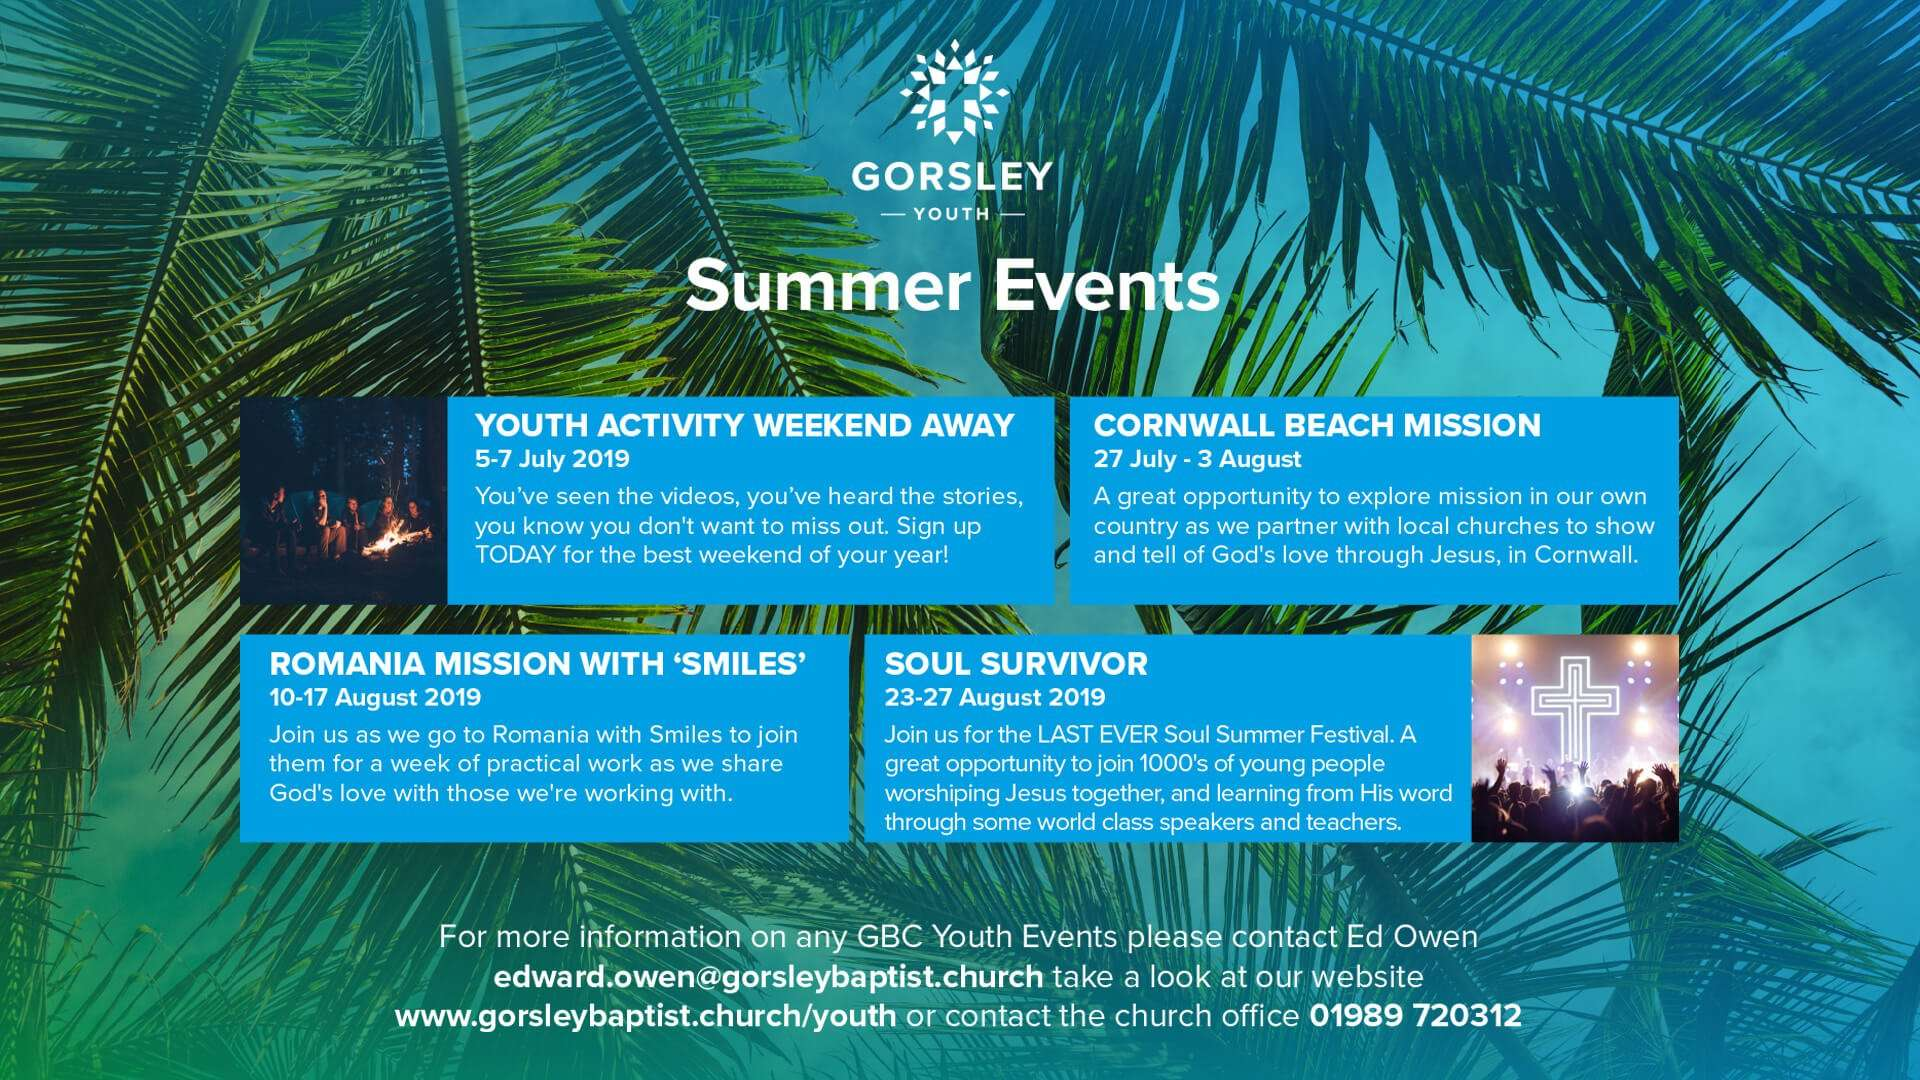 Youth Summer Events